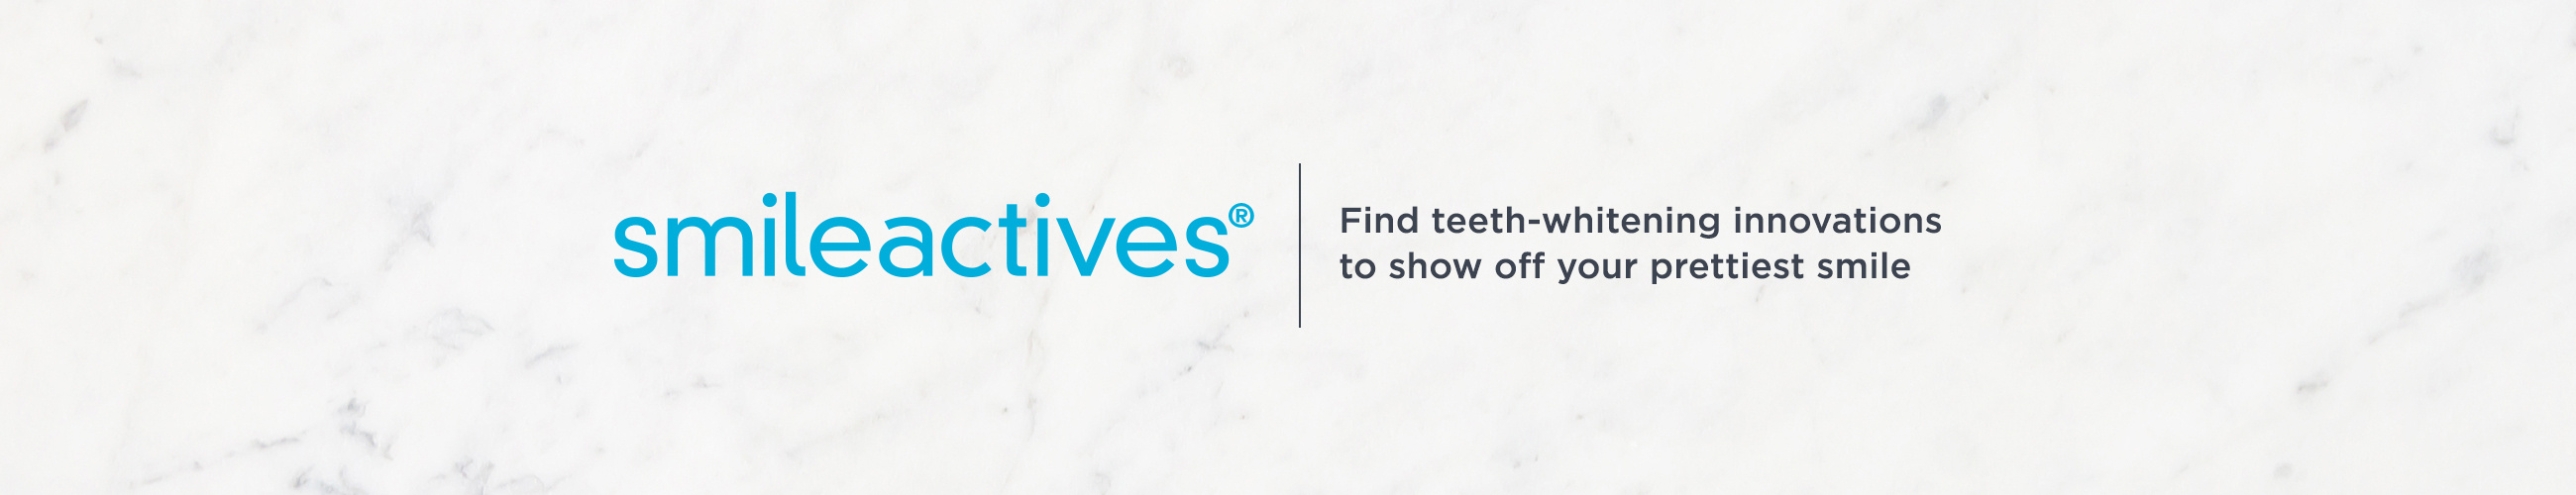 Smileactives Find teeth-whitening innovations to show off your prettiest smile